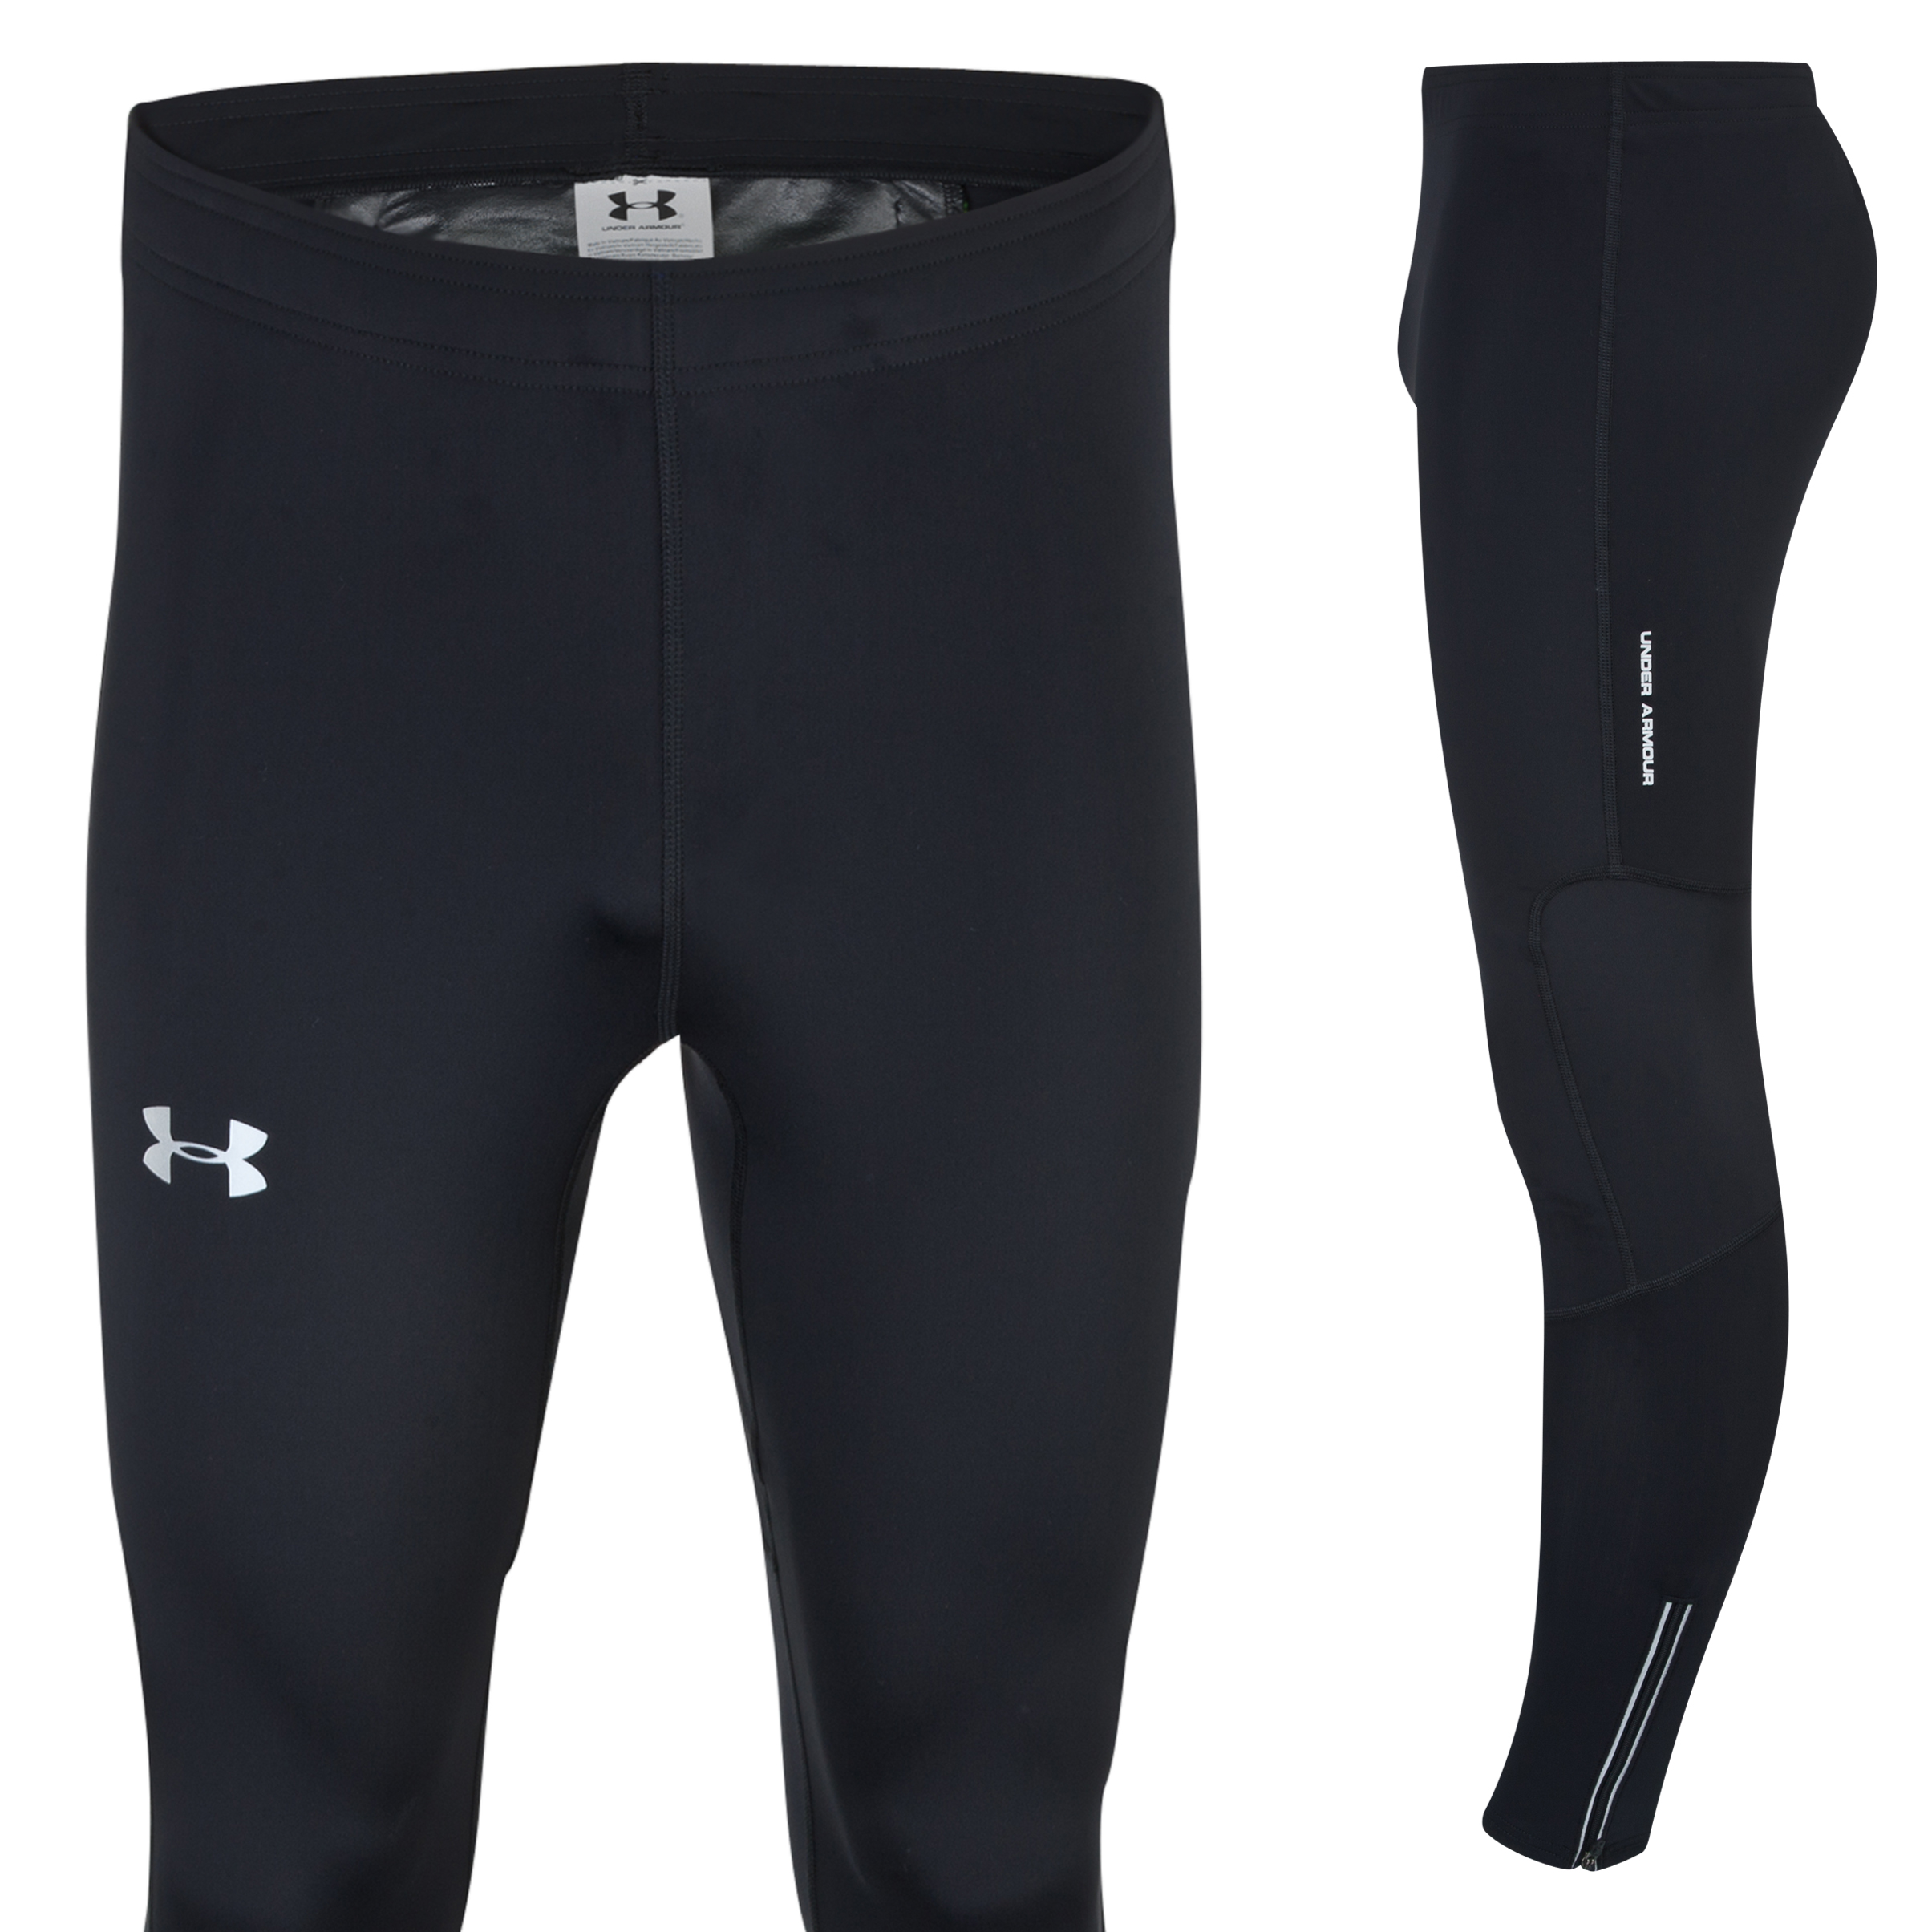 Running Under Armour Dynamic Run Compression Tight - Black/Reflective Dk Grey